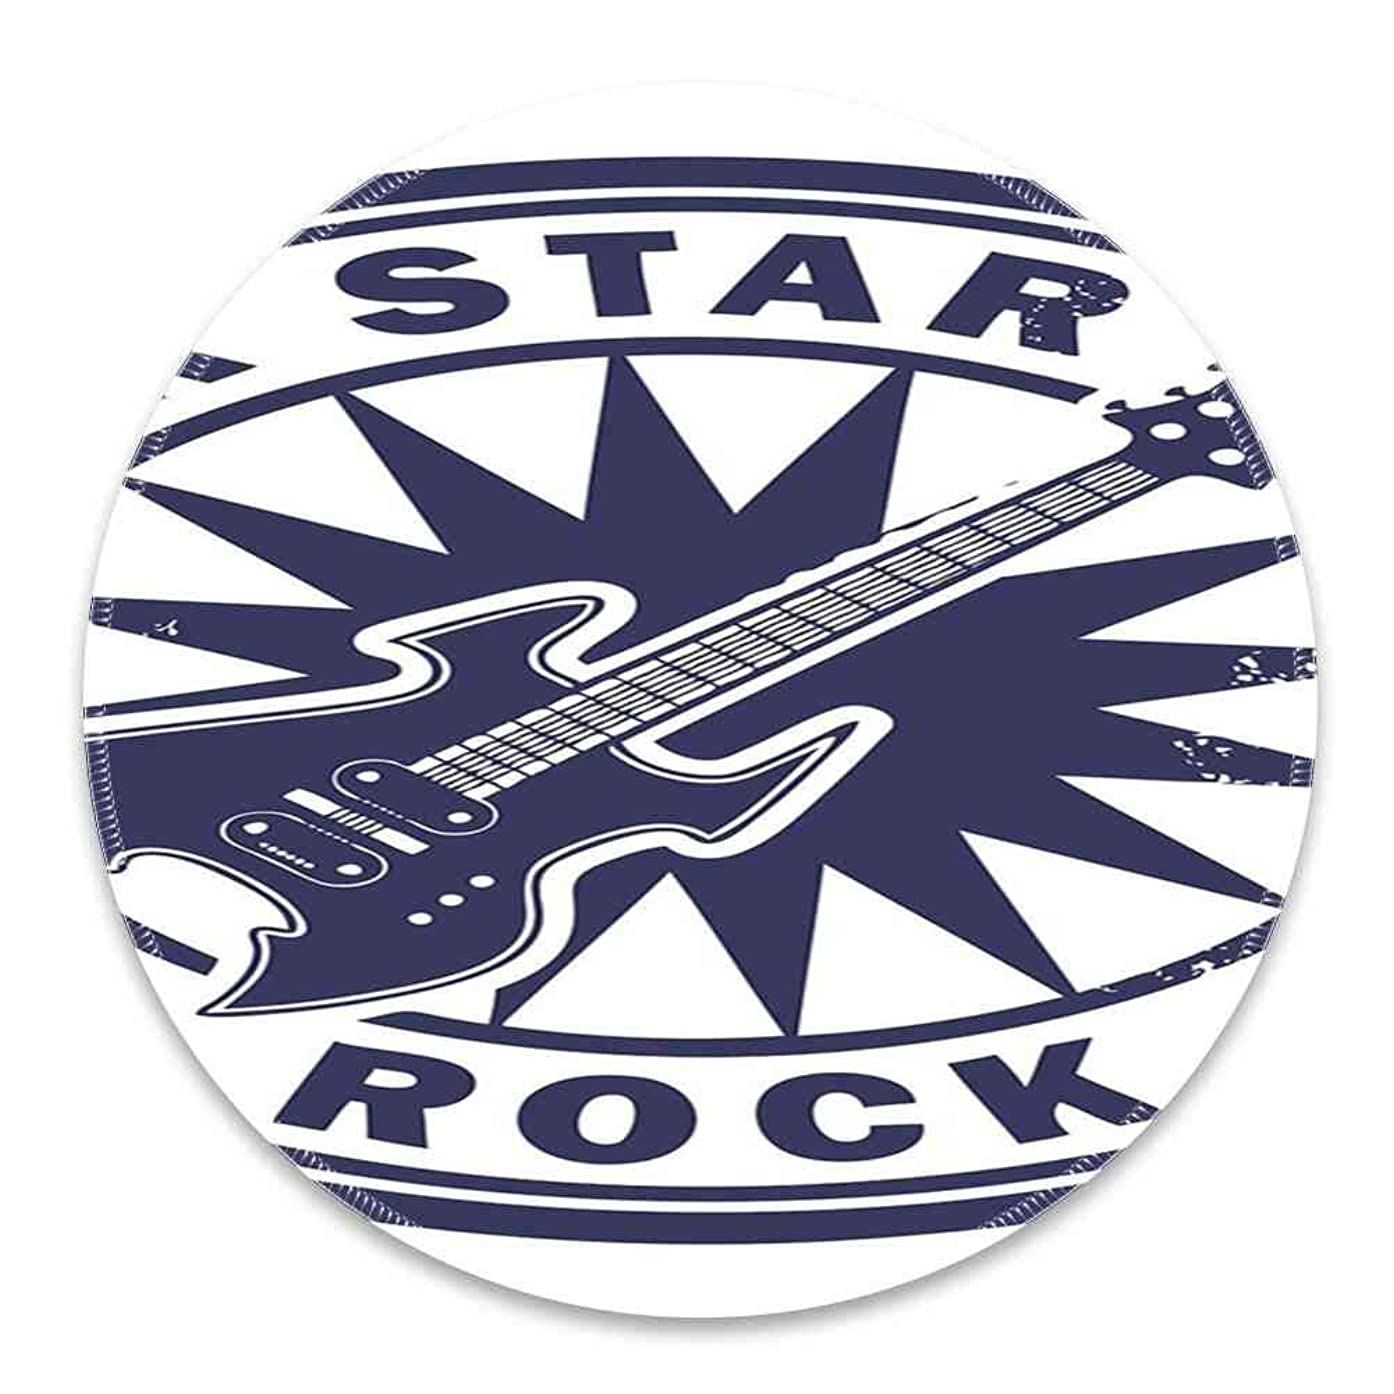 Round Mouse Pad Mousepad with Rock Music,Vintage Logo Design Guitar and Sun Pattern Grunge Stamp Monochrome Illustration,Cobalt Blue Pattern Gel Rubber for Gaming Office - 200MMx3MM